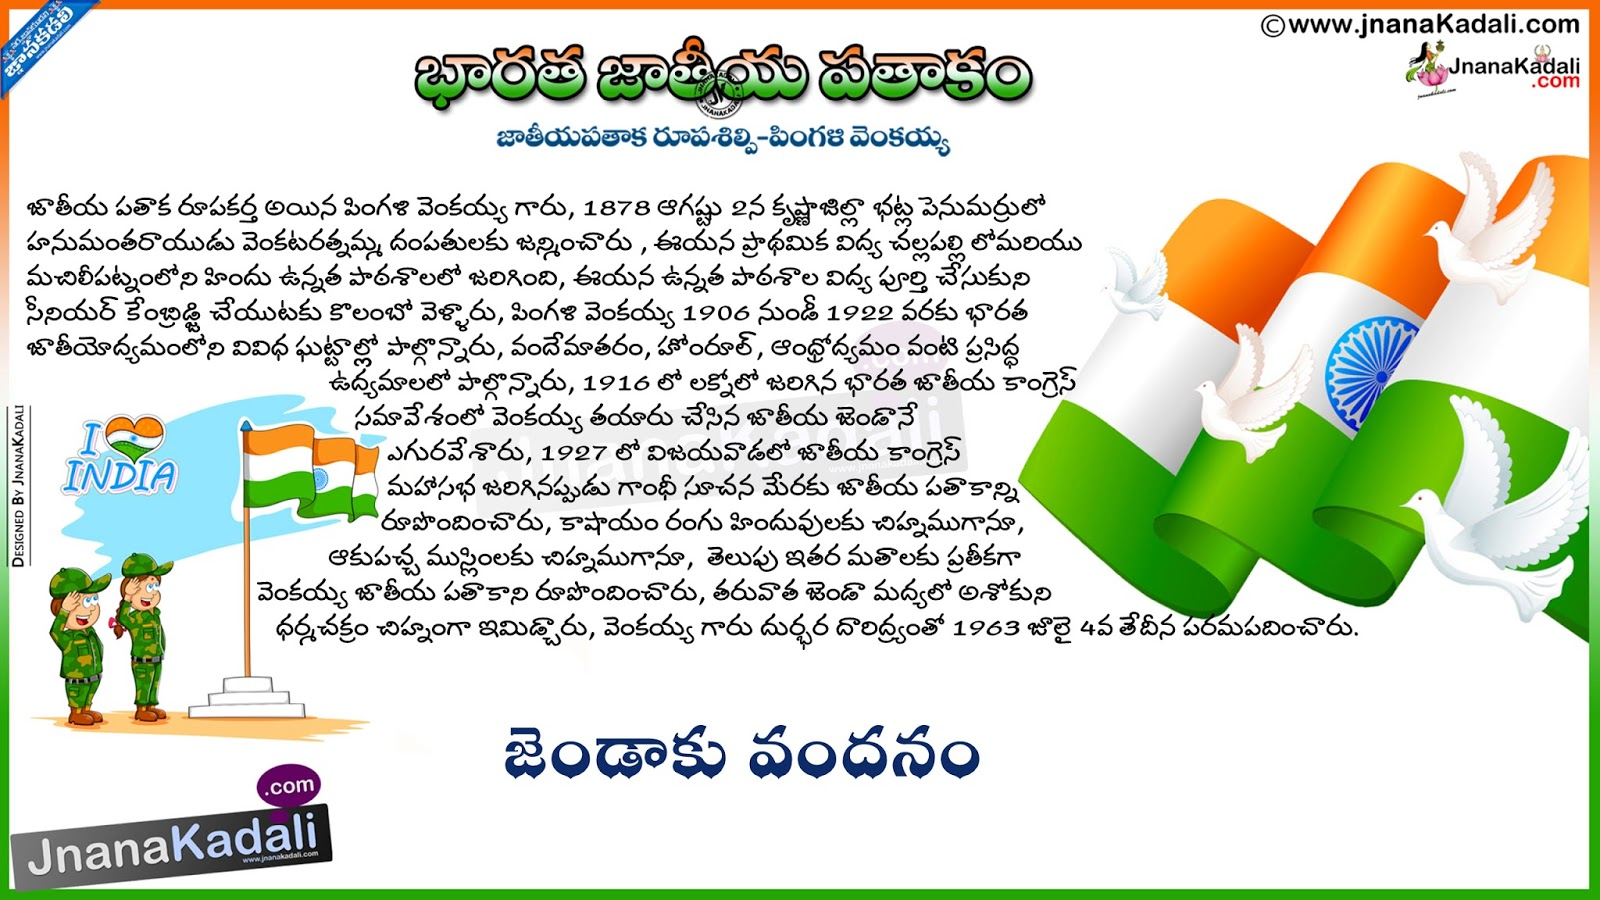 essay writing on independence day of india in telugu Telugu essay writings childrens day in india essay in telugu independence day  speech in telugu by l manoj sai of th class essays on child labor camillechild.